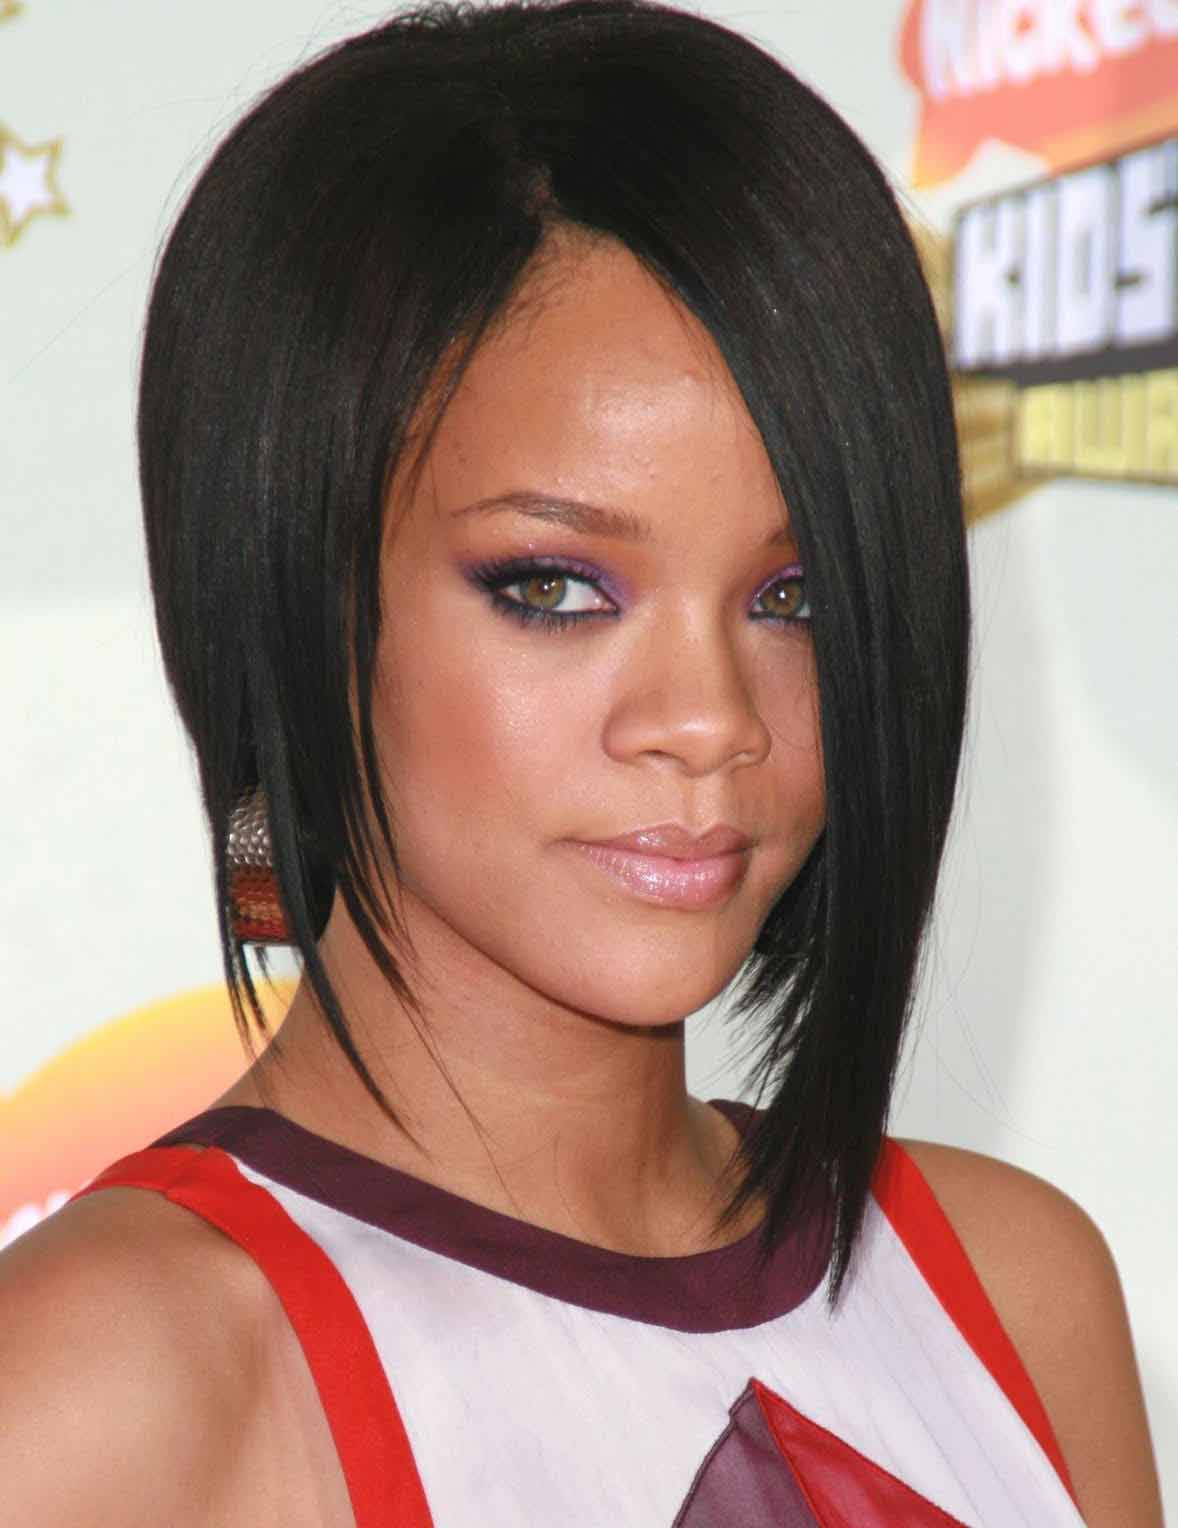 Best ideas about Hairstyle For Girls With Big Foreheads . Save or Pin Best Hairstyles for Big Foreheads Now.